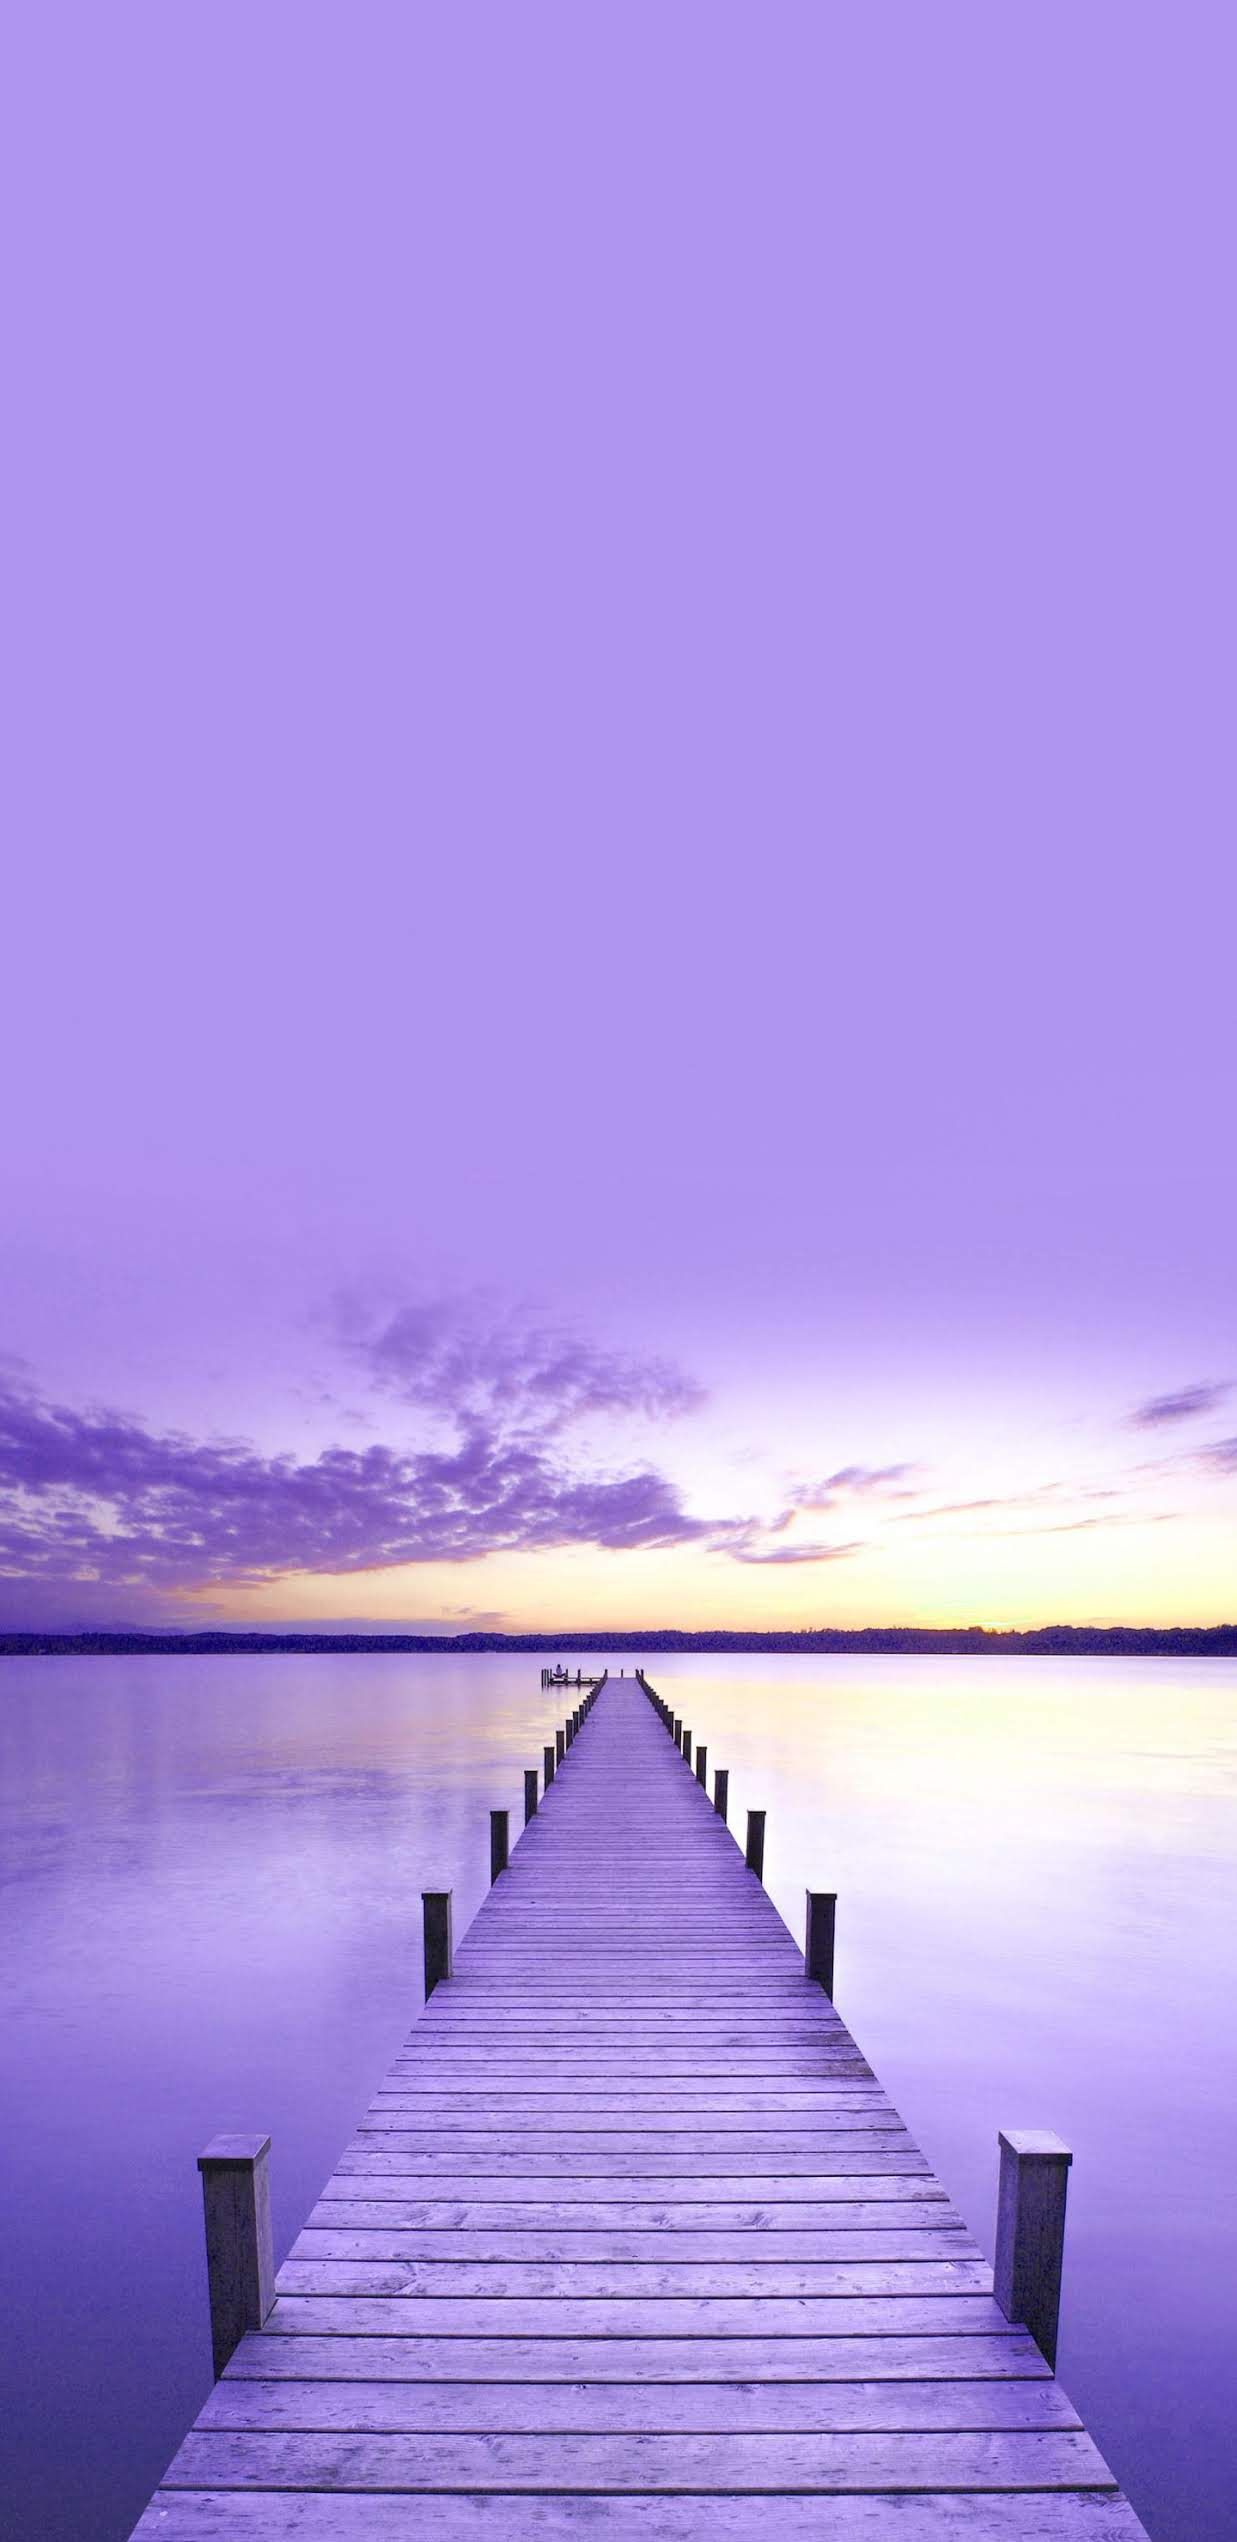 Wallpapers Samsung Galaxy Note 8 - Pack 2